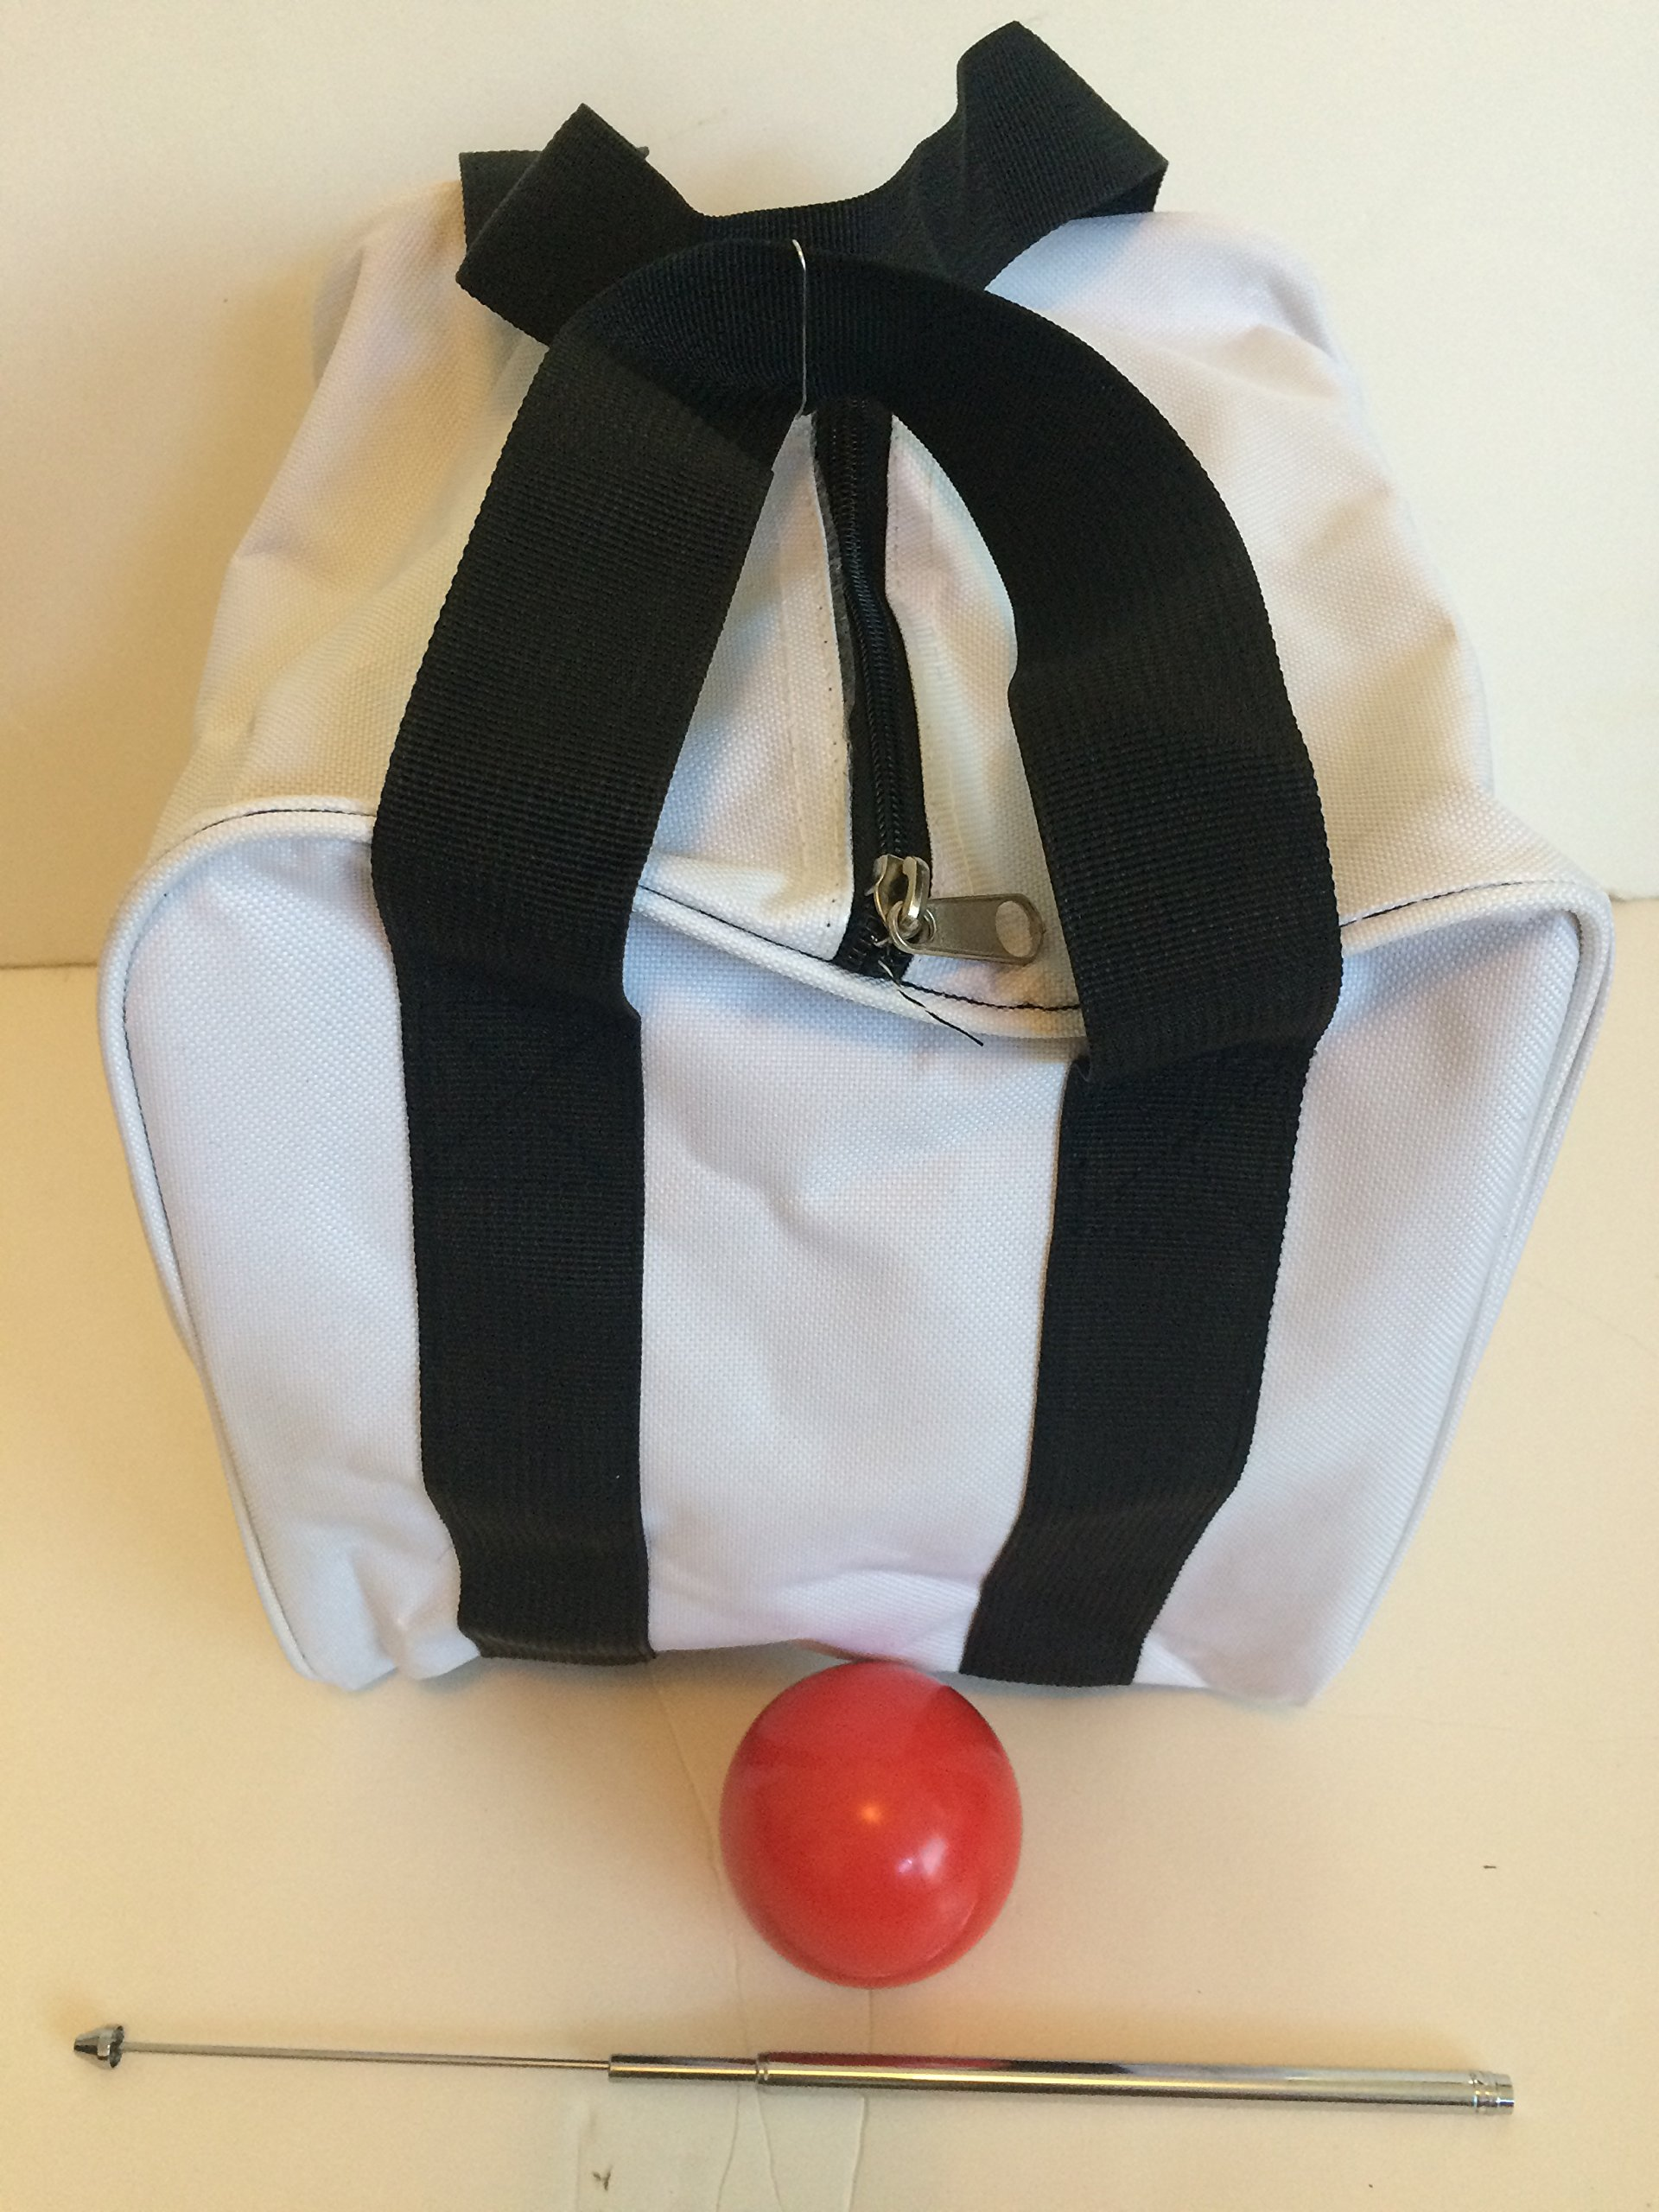 Unique Bocce Accessories Package - Extra Heavy Duty Nylon Bocce Bag (White with Black Handles), red pallina, Extendable Measuring Device